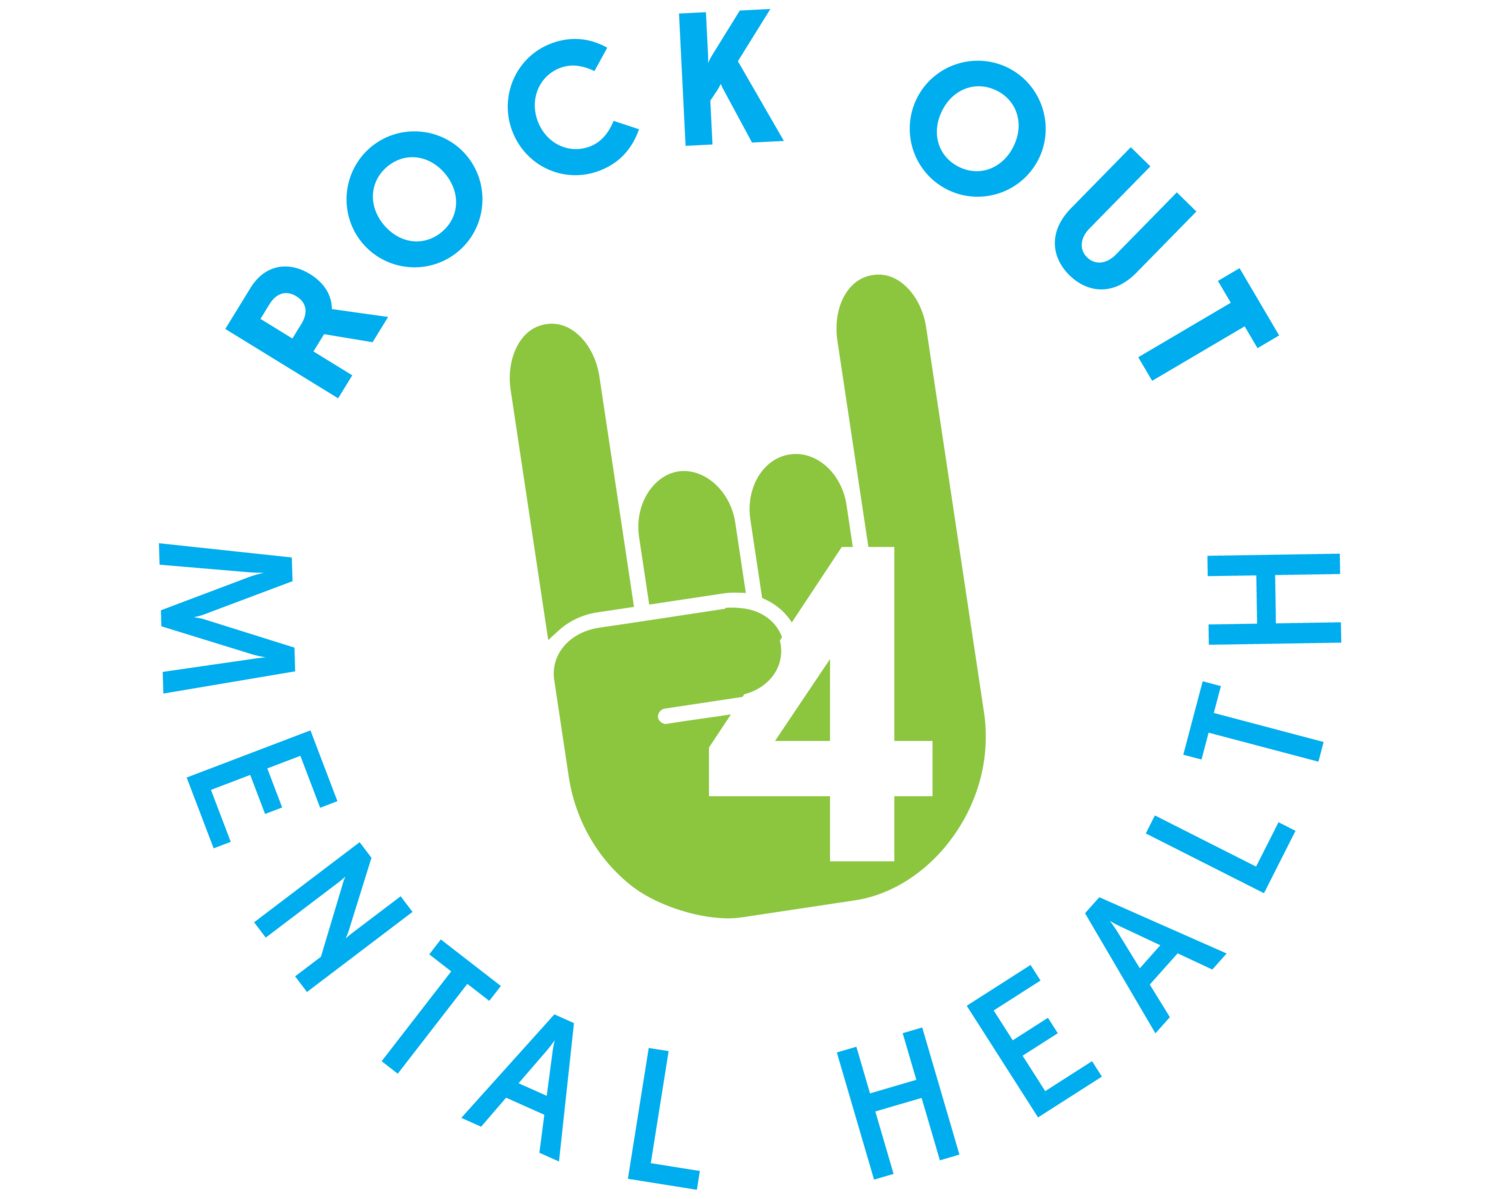 Rock Out 4 Mental Health